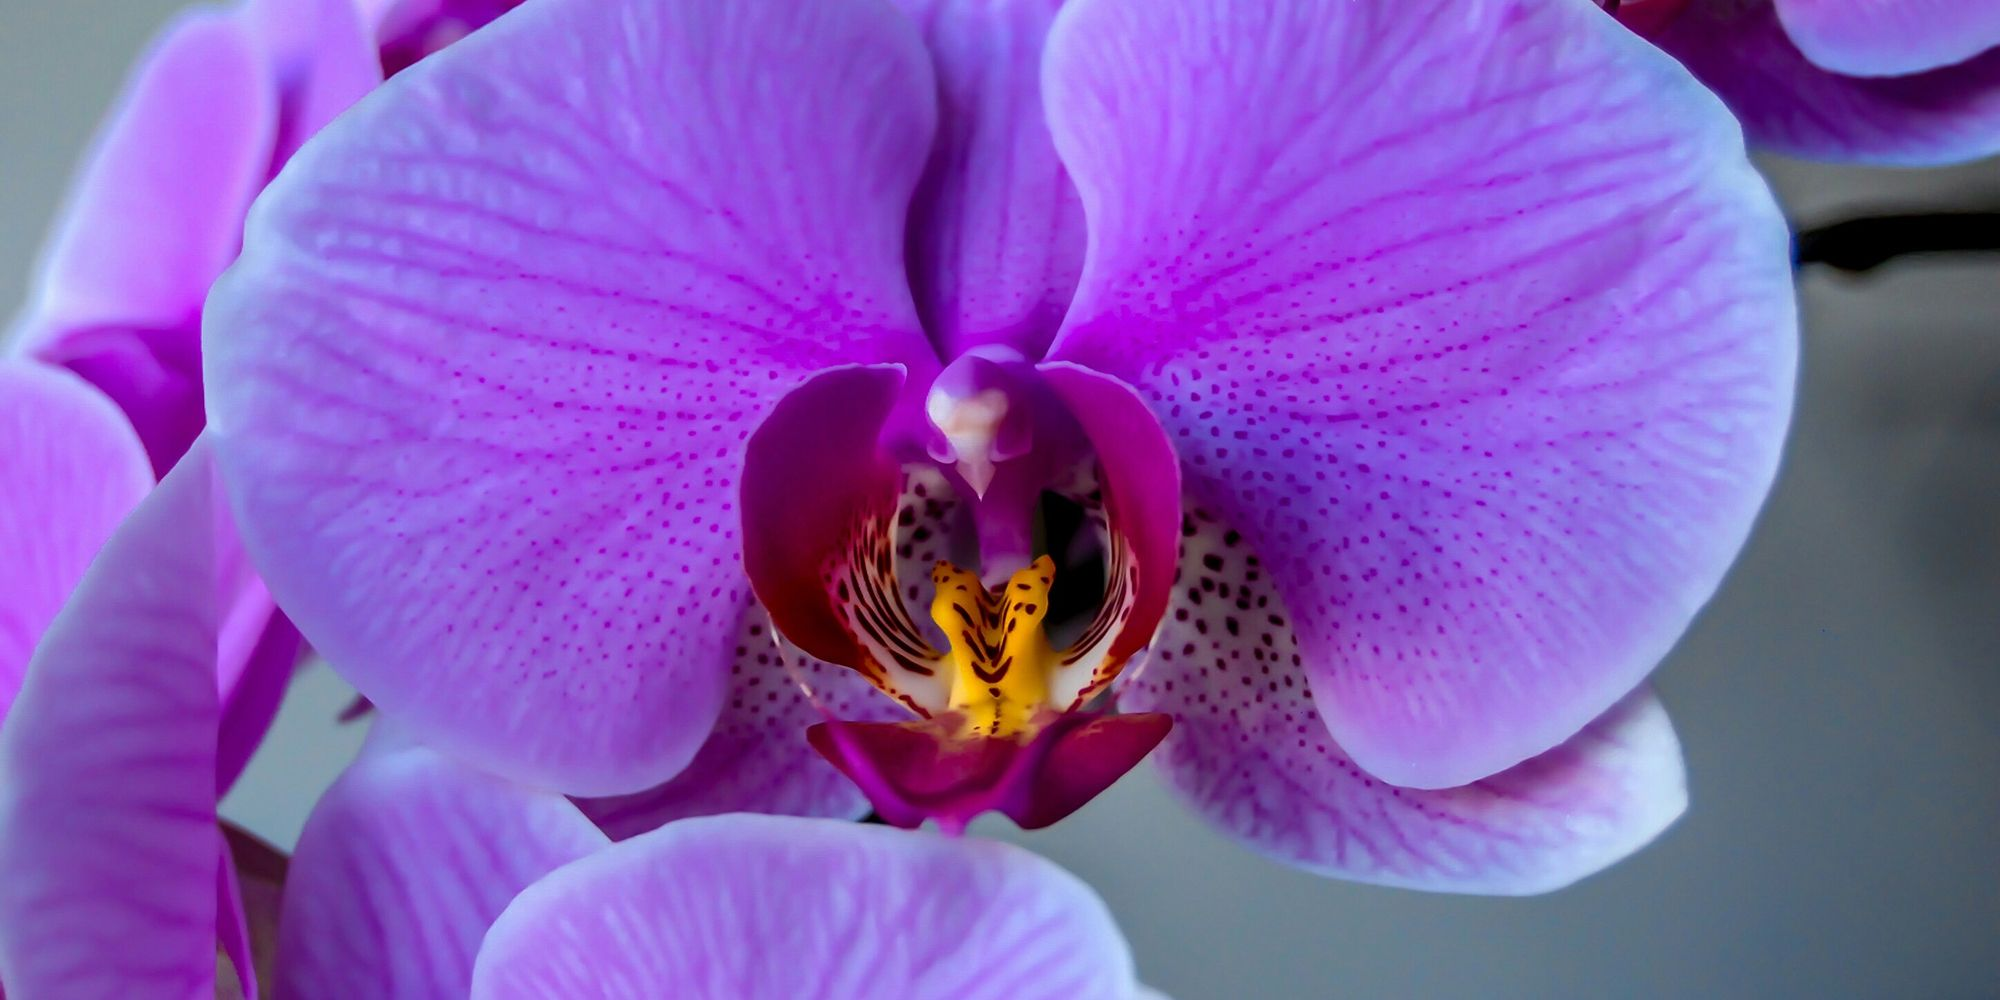 Scientists Have Discovered an Extremely Rare Type of Orchid